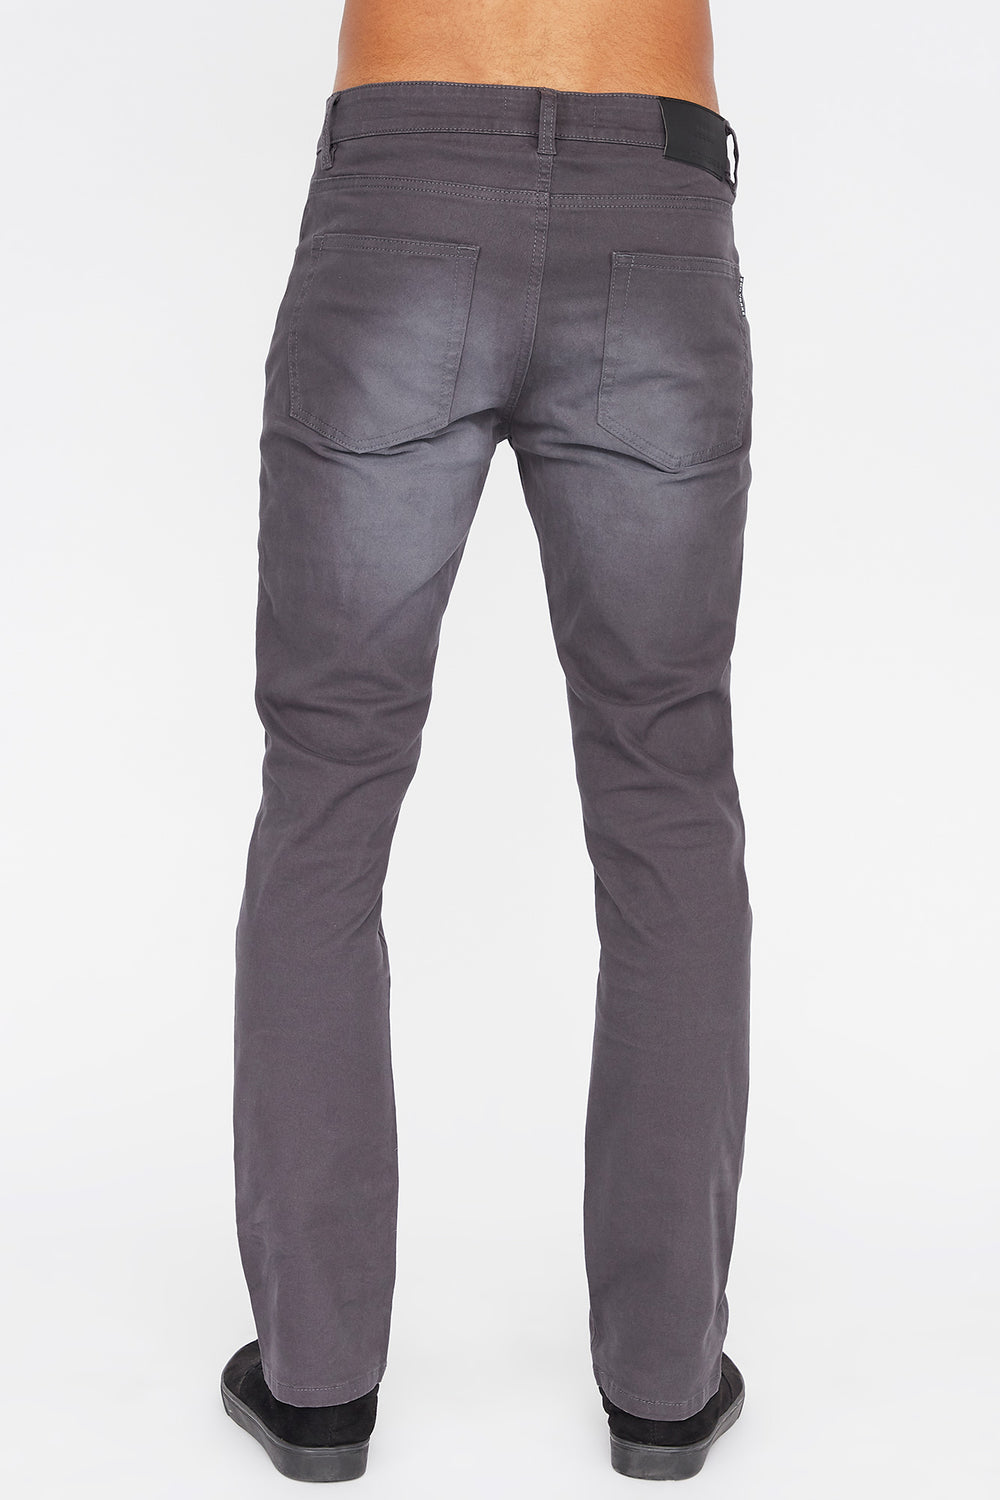 Zoo York Mens Slim Jeans Dark Blue